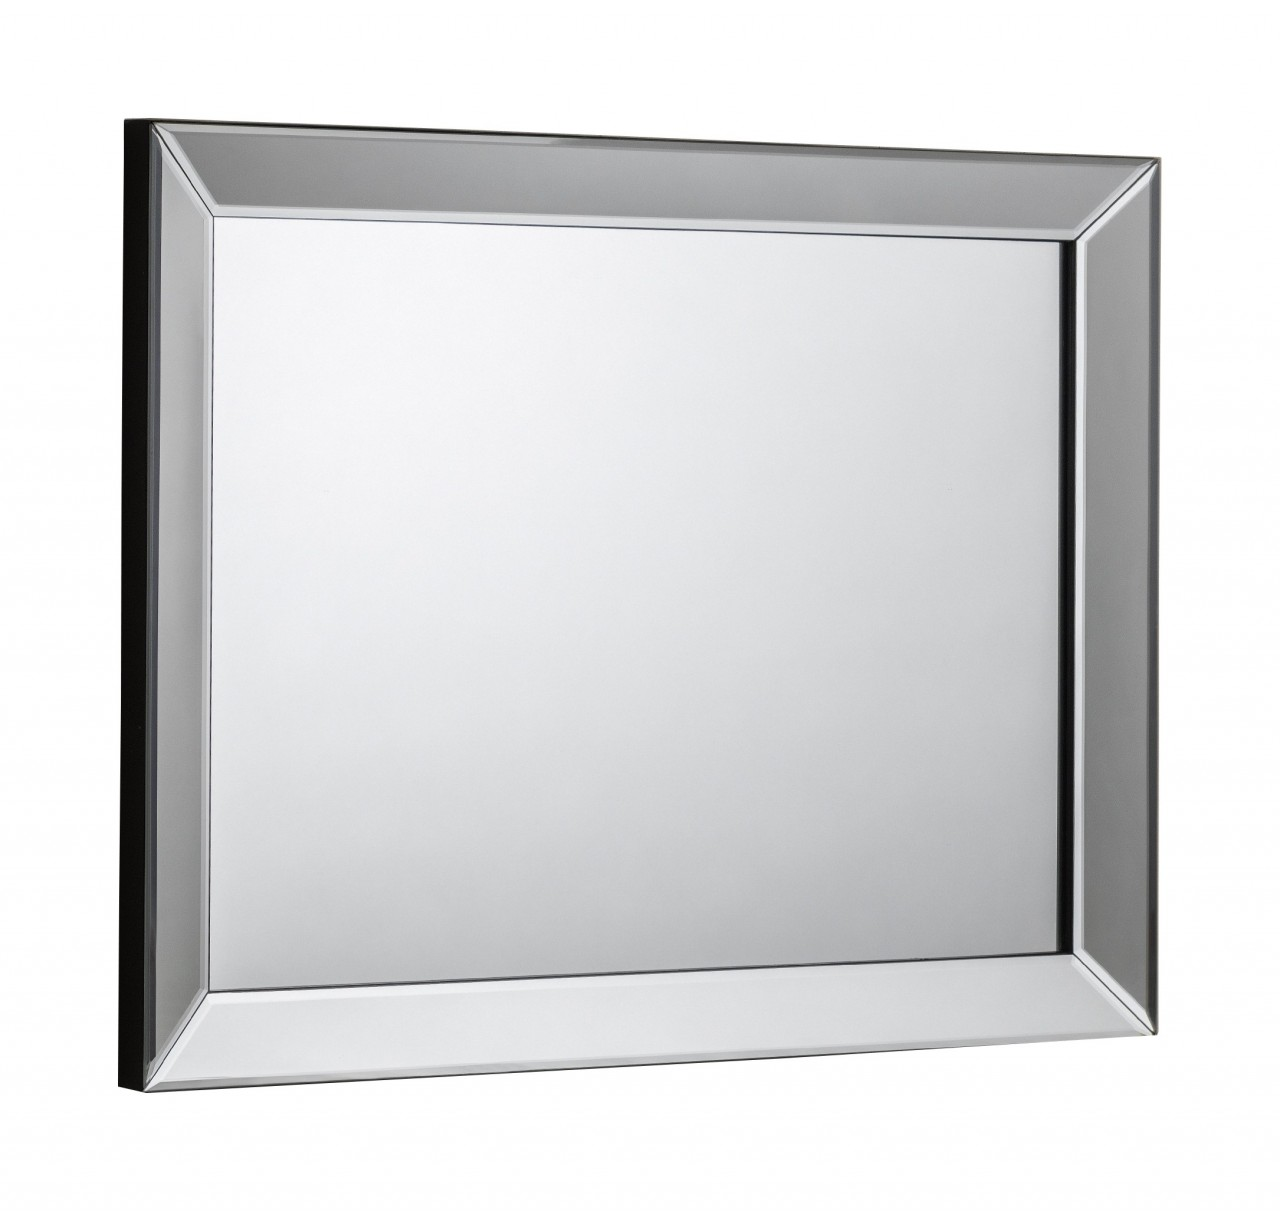 Photo of Julian bowen soprano wall mirror